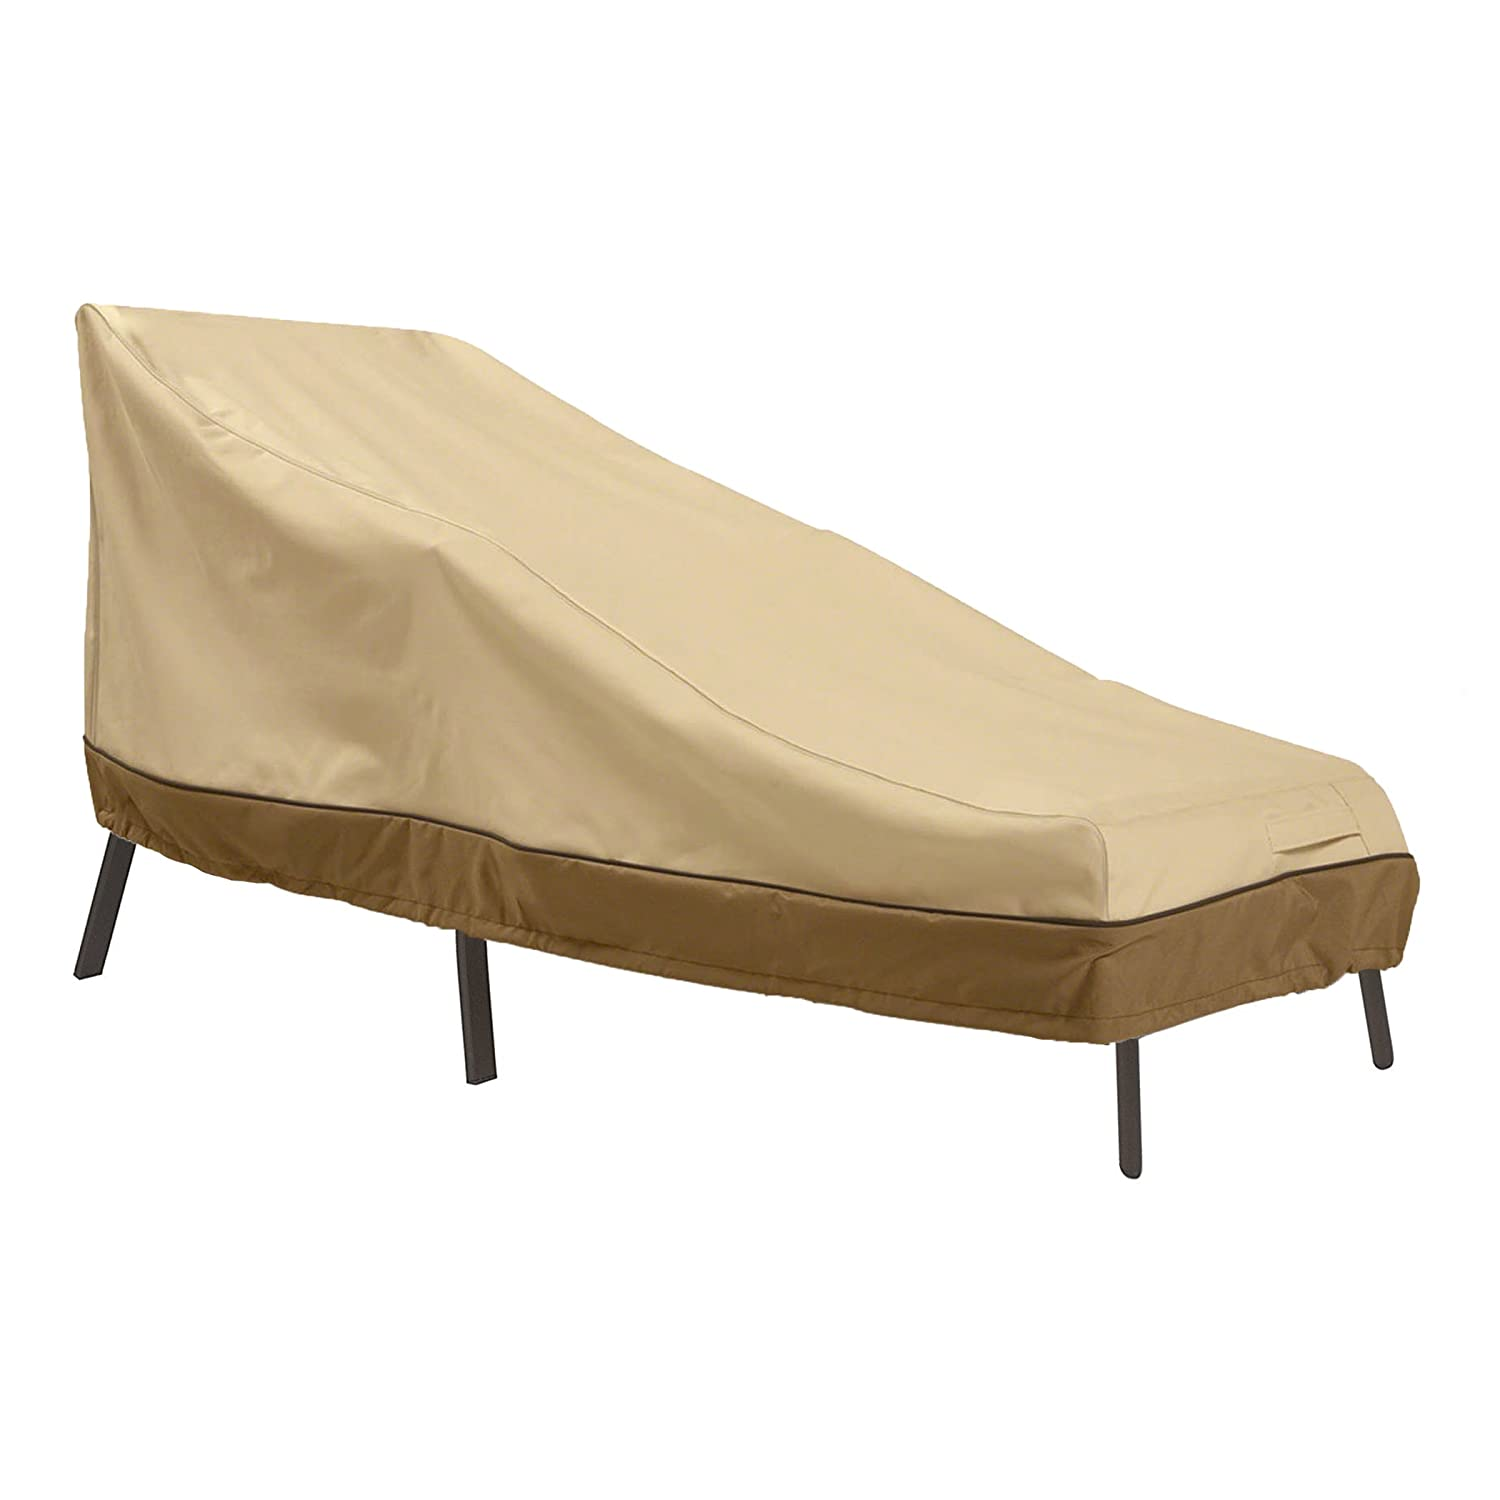 Classic Accessories Veranda Patio Chaise Lounge Cover, Medium